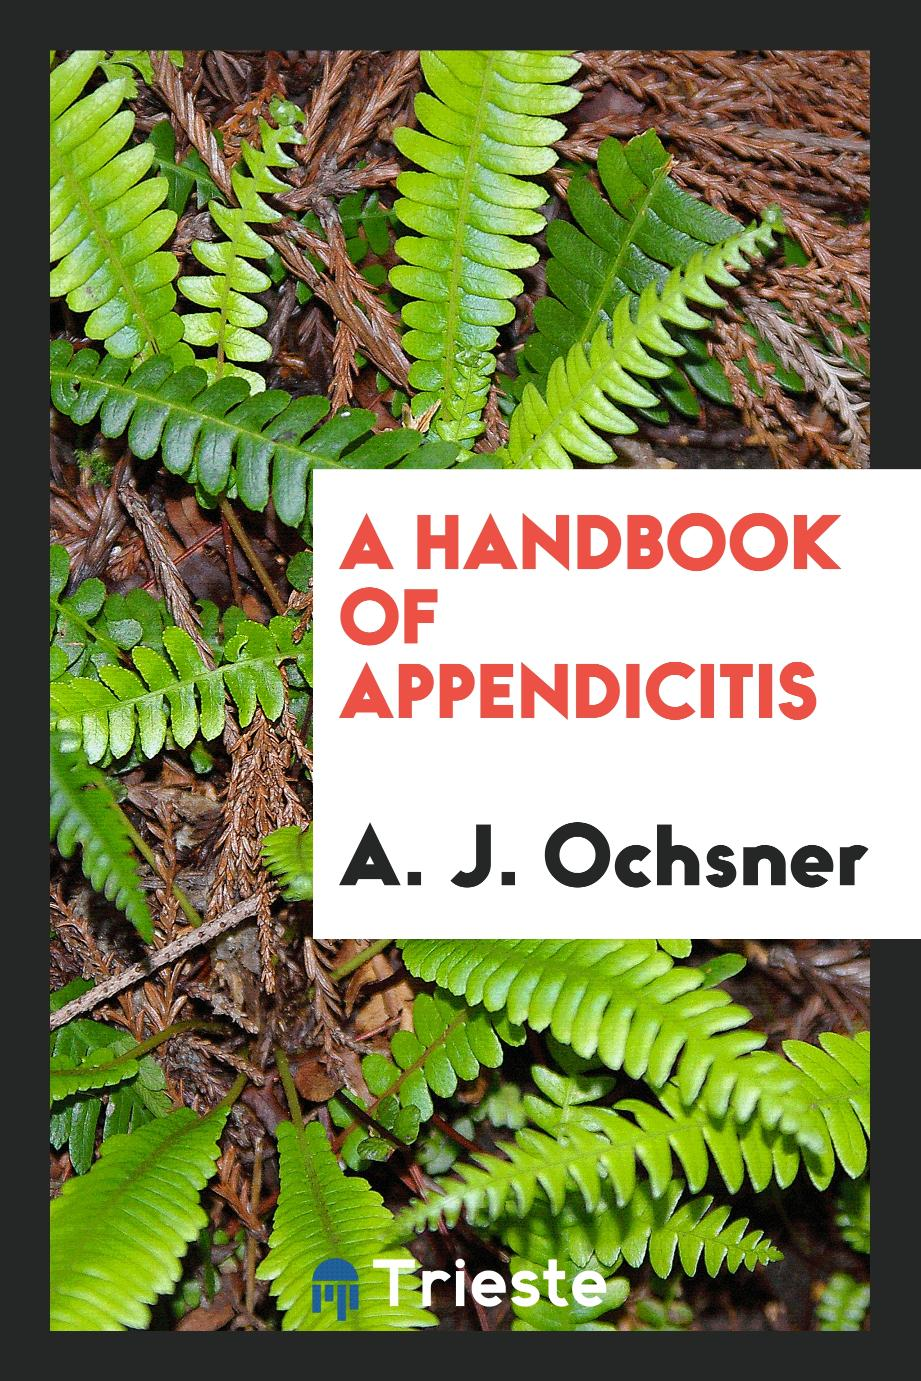 A handbook of appendicitis